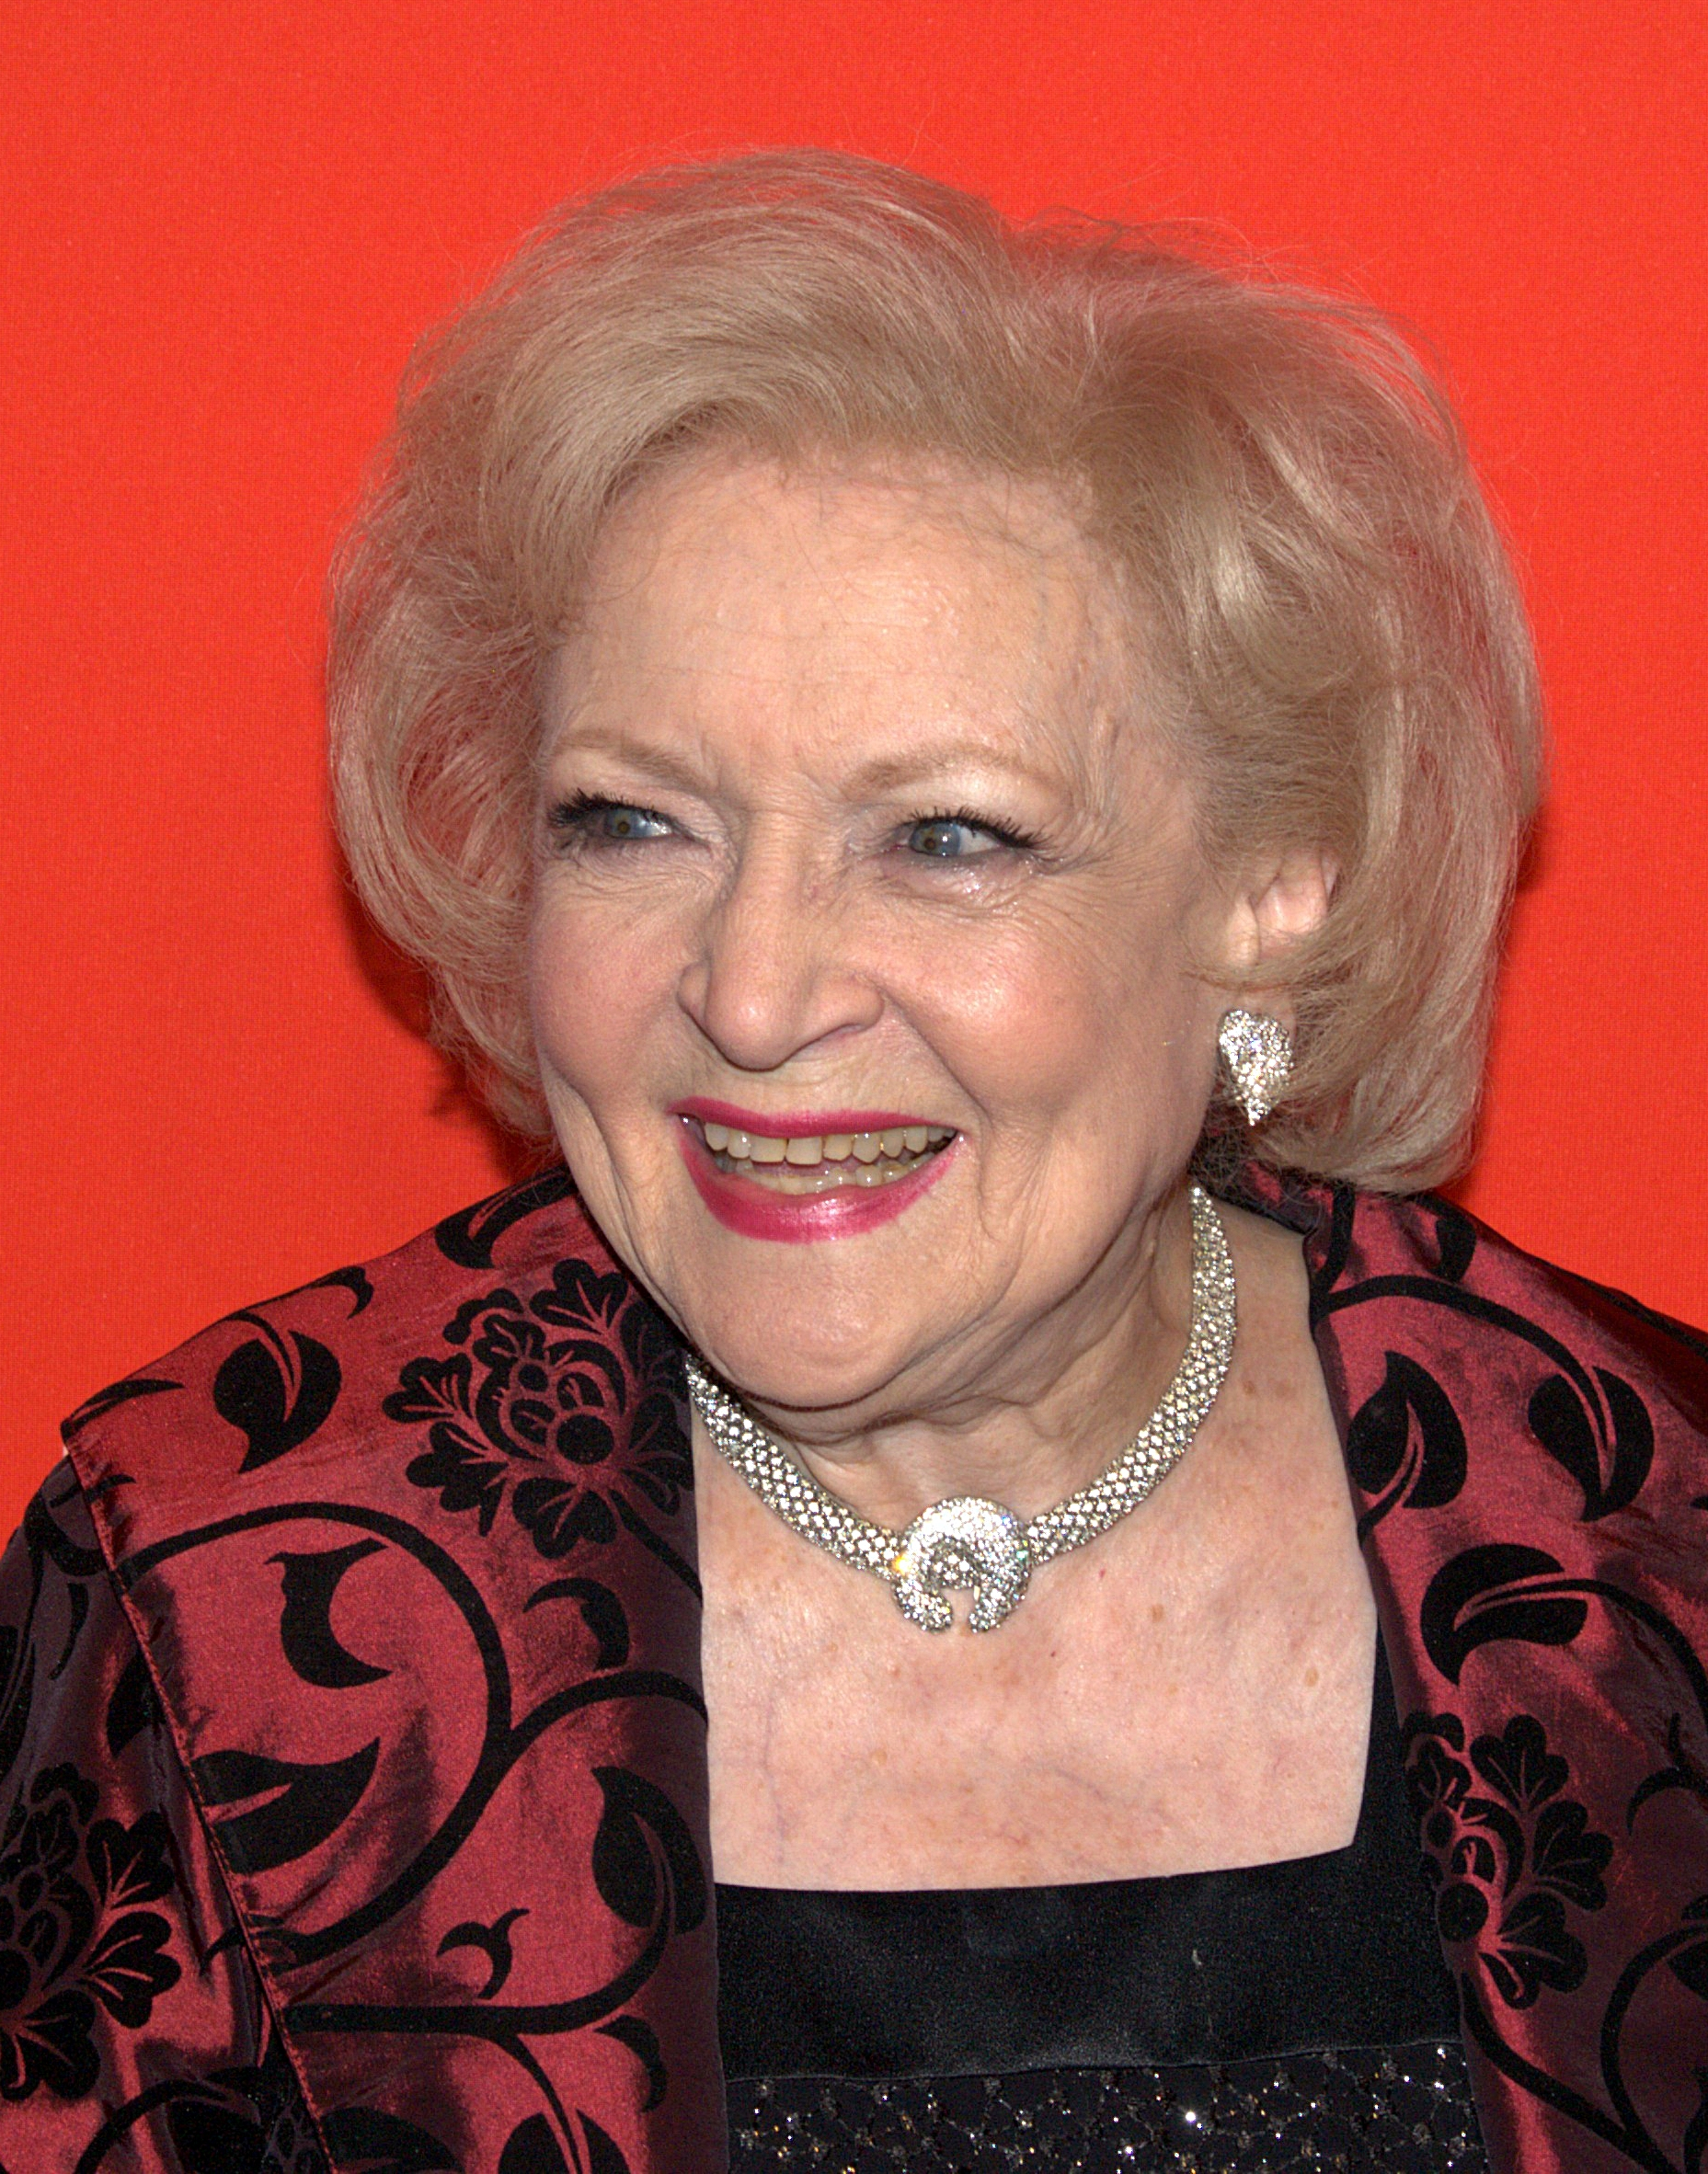 Betty White 2010